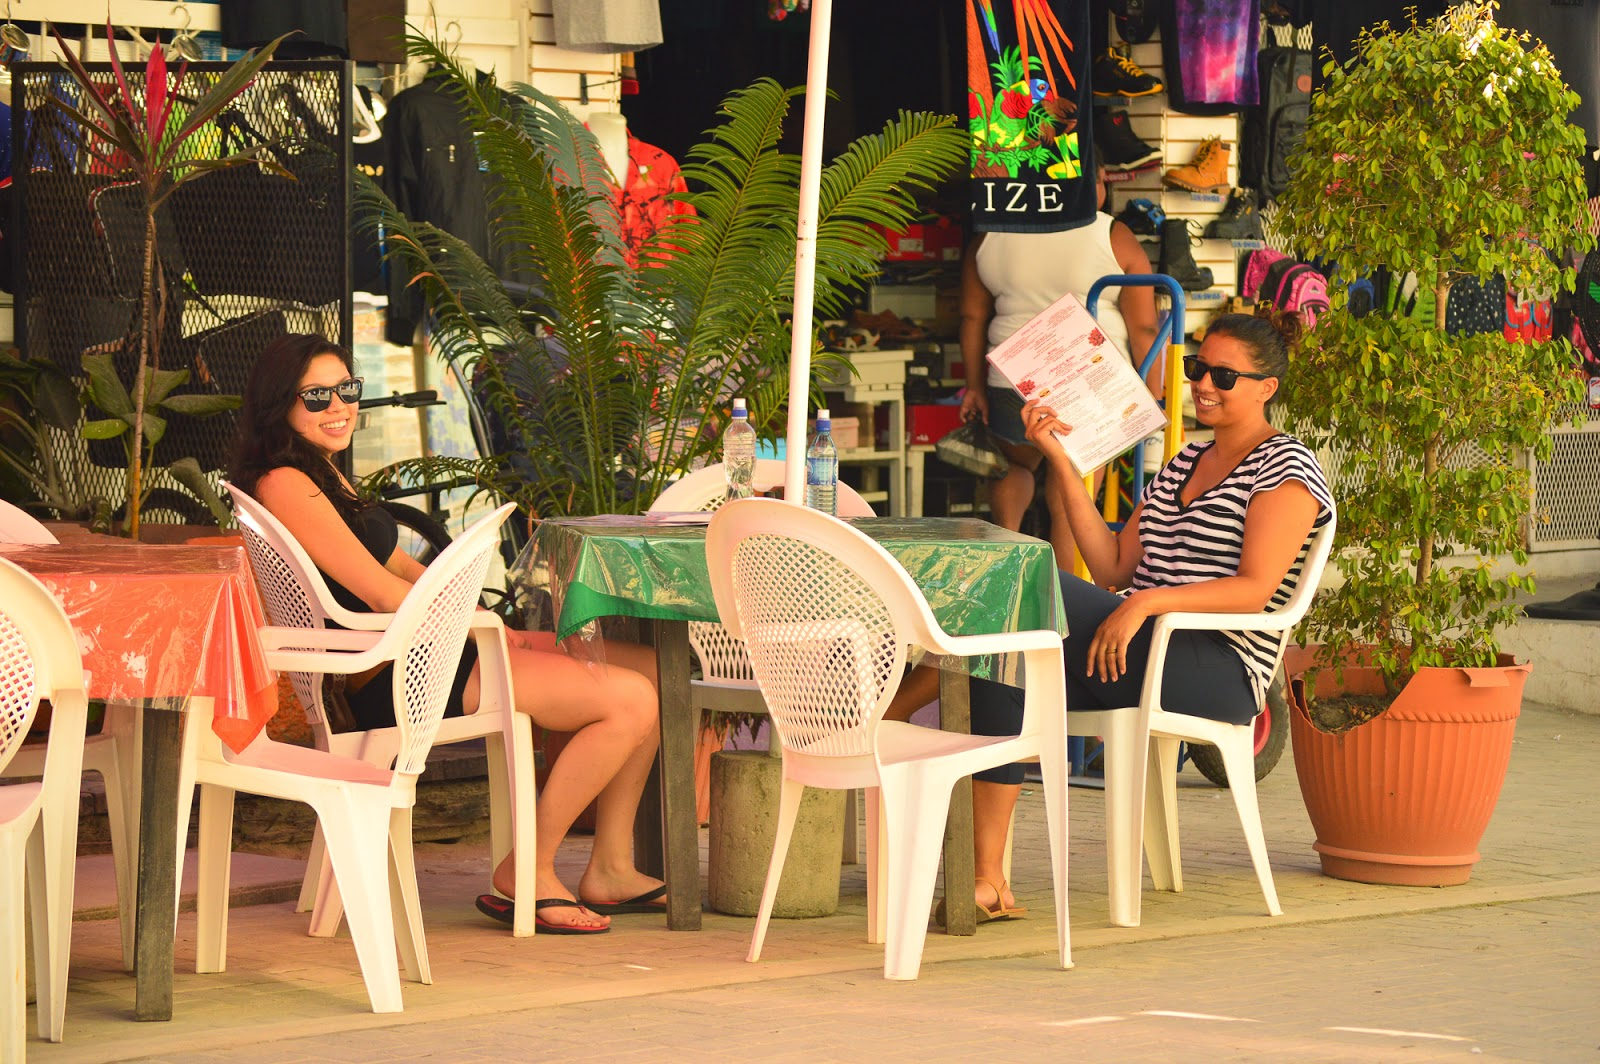 People watching in Belize